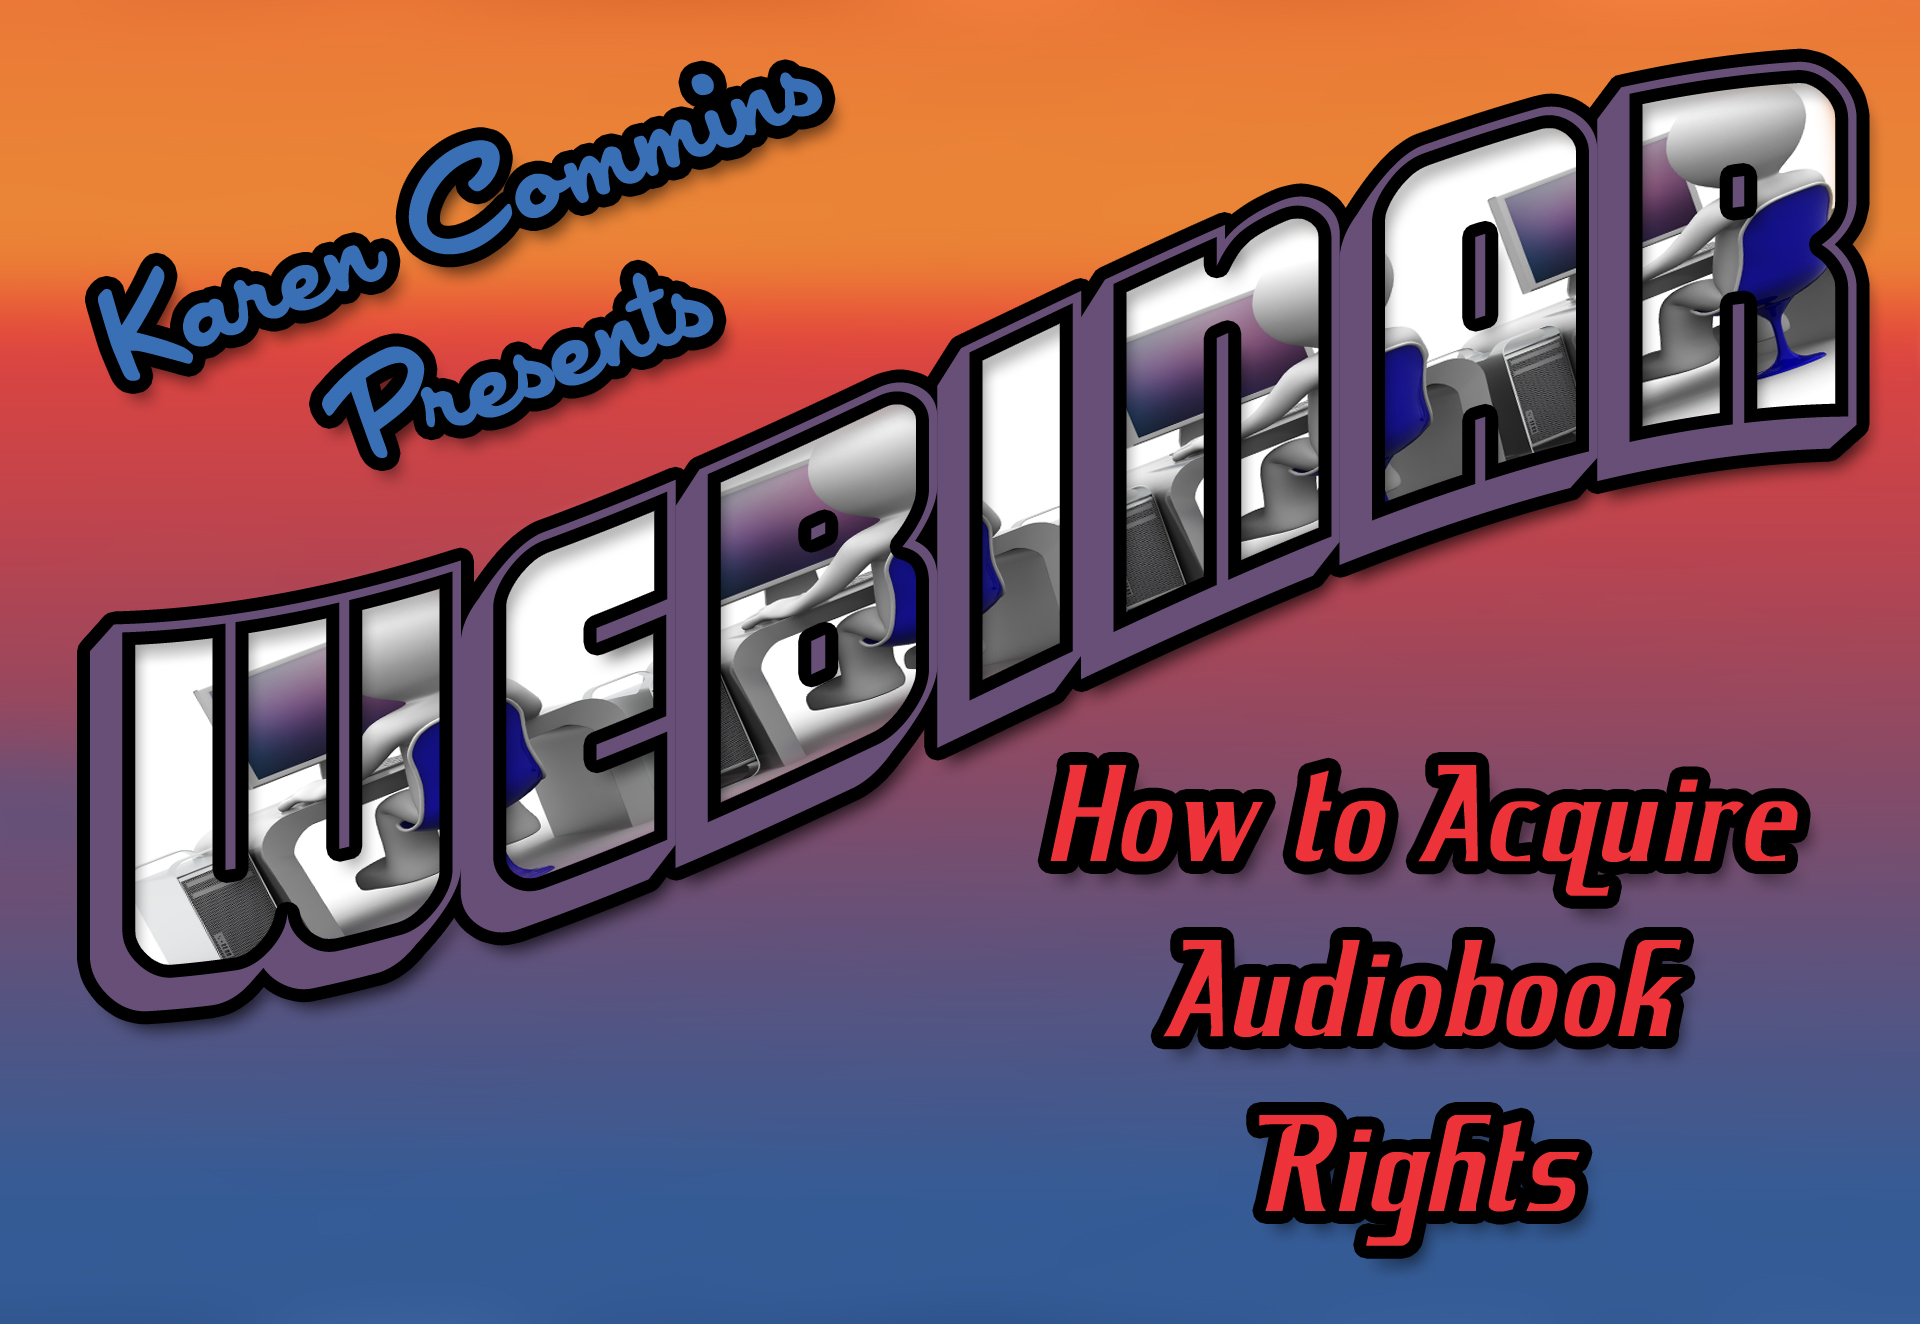 Karen Commins Presents Webinar How To Acquire Audiobook Rights